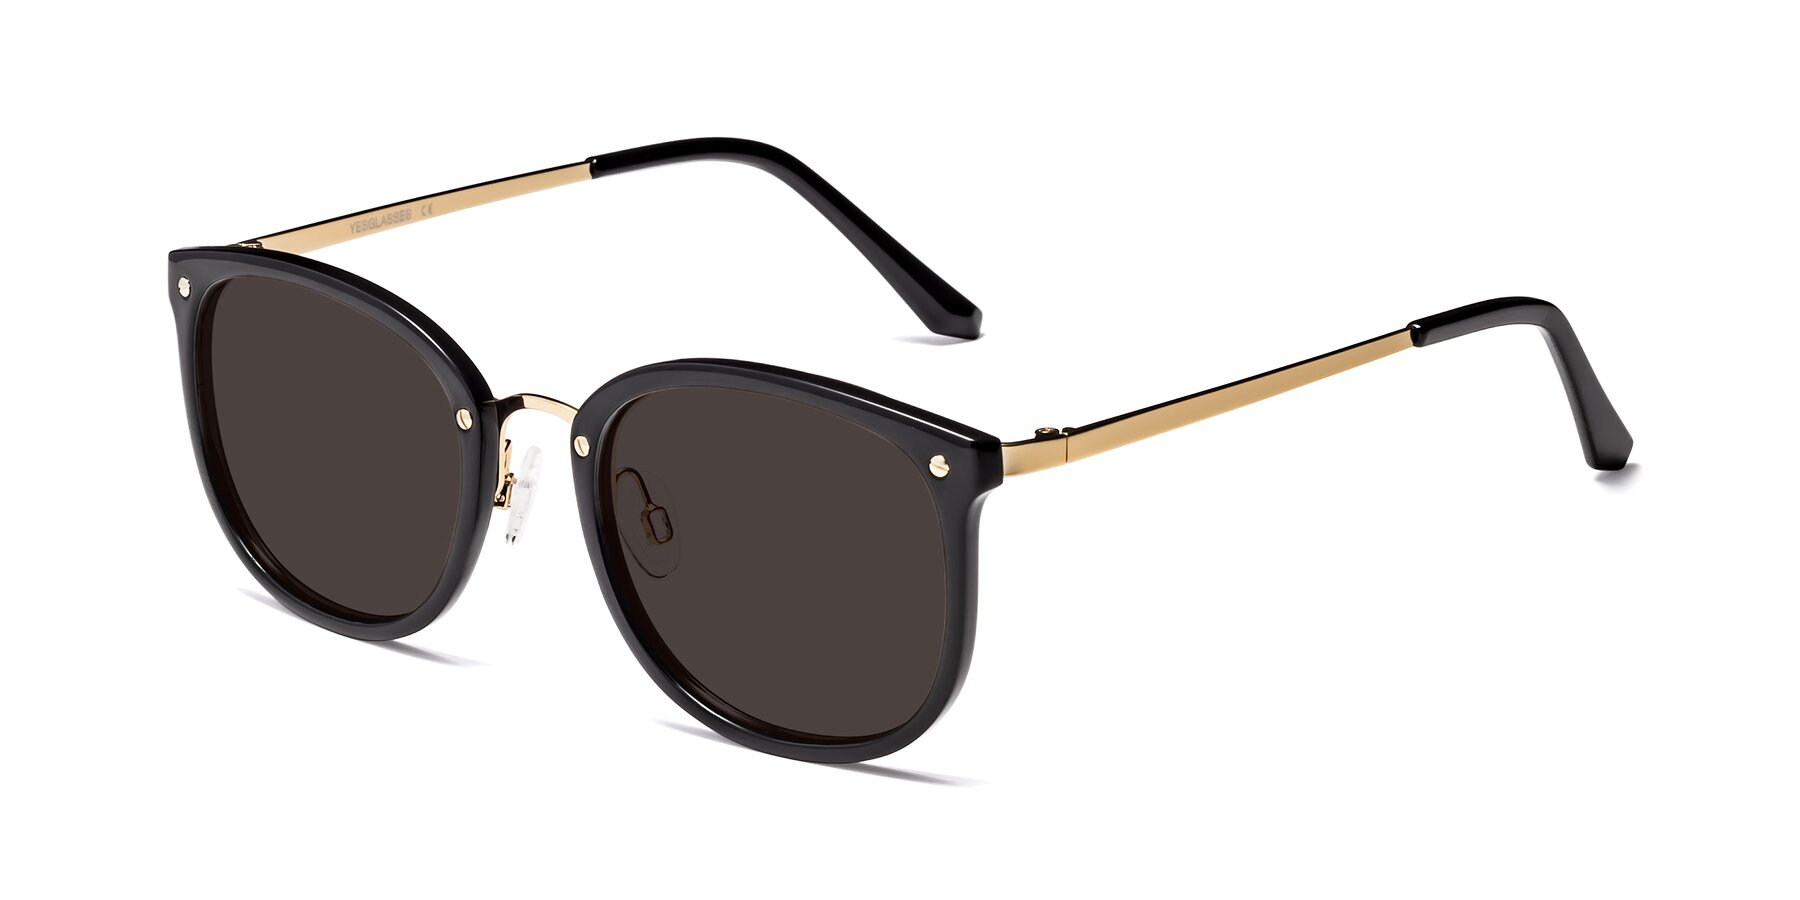 Angle of Timeless in Black-Gold with Gray Tinted Lenses